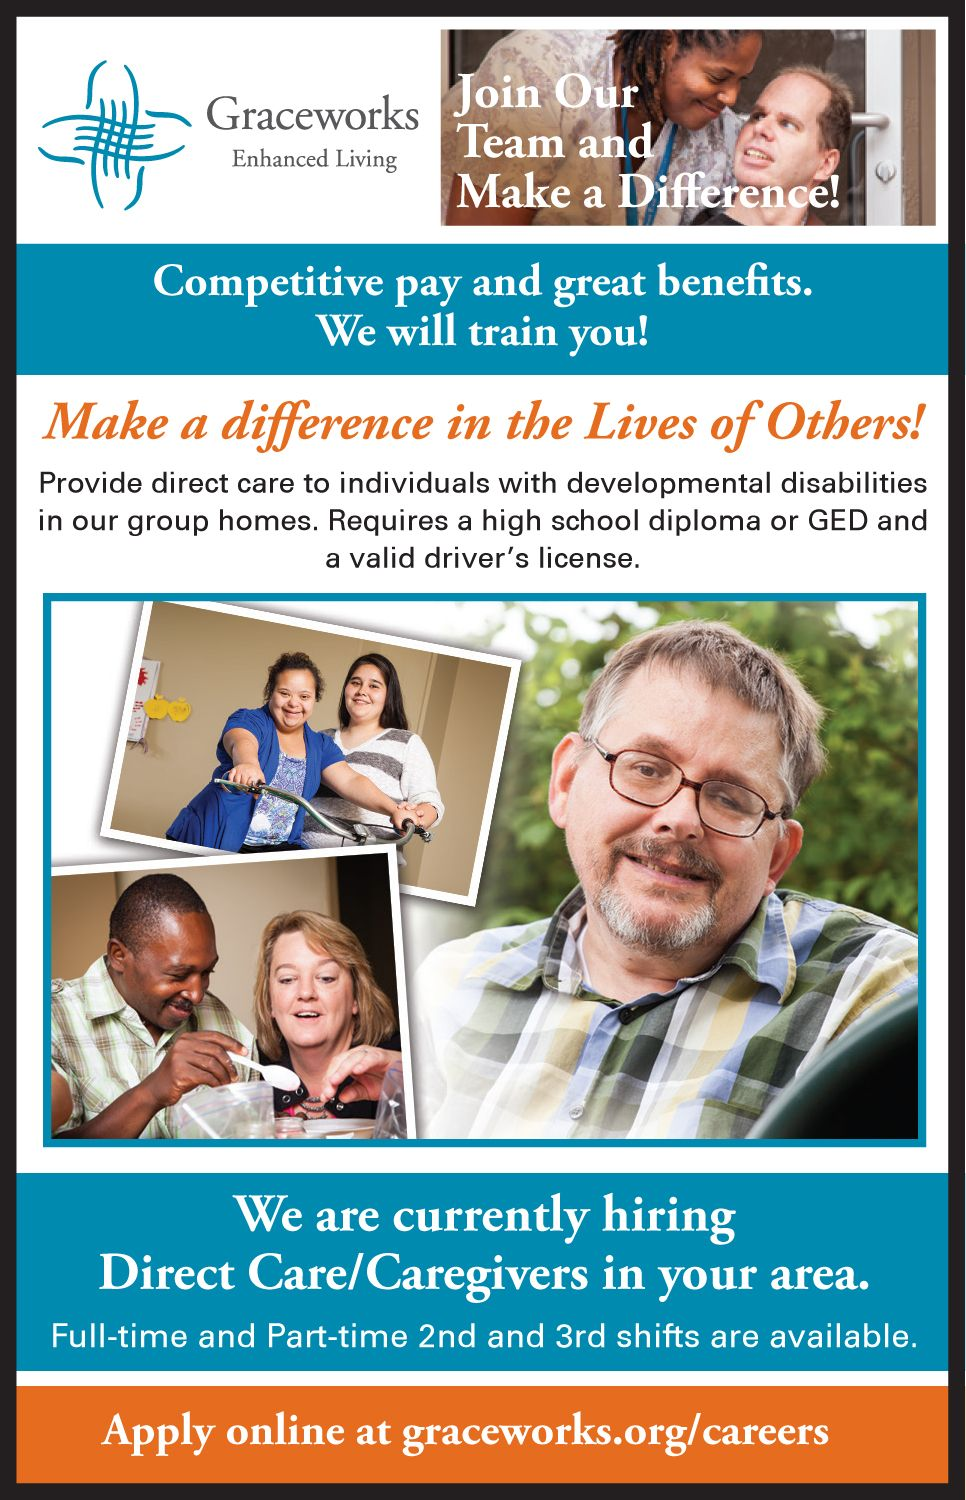 We're always looking for amazing caregivers. No experience